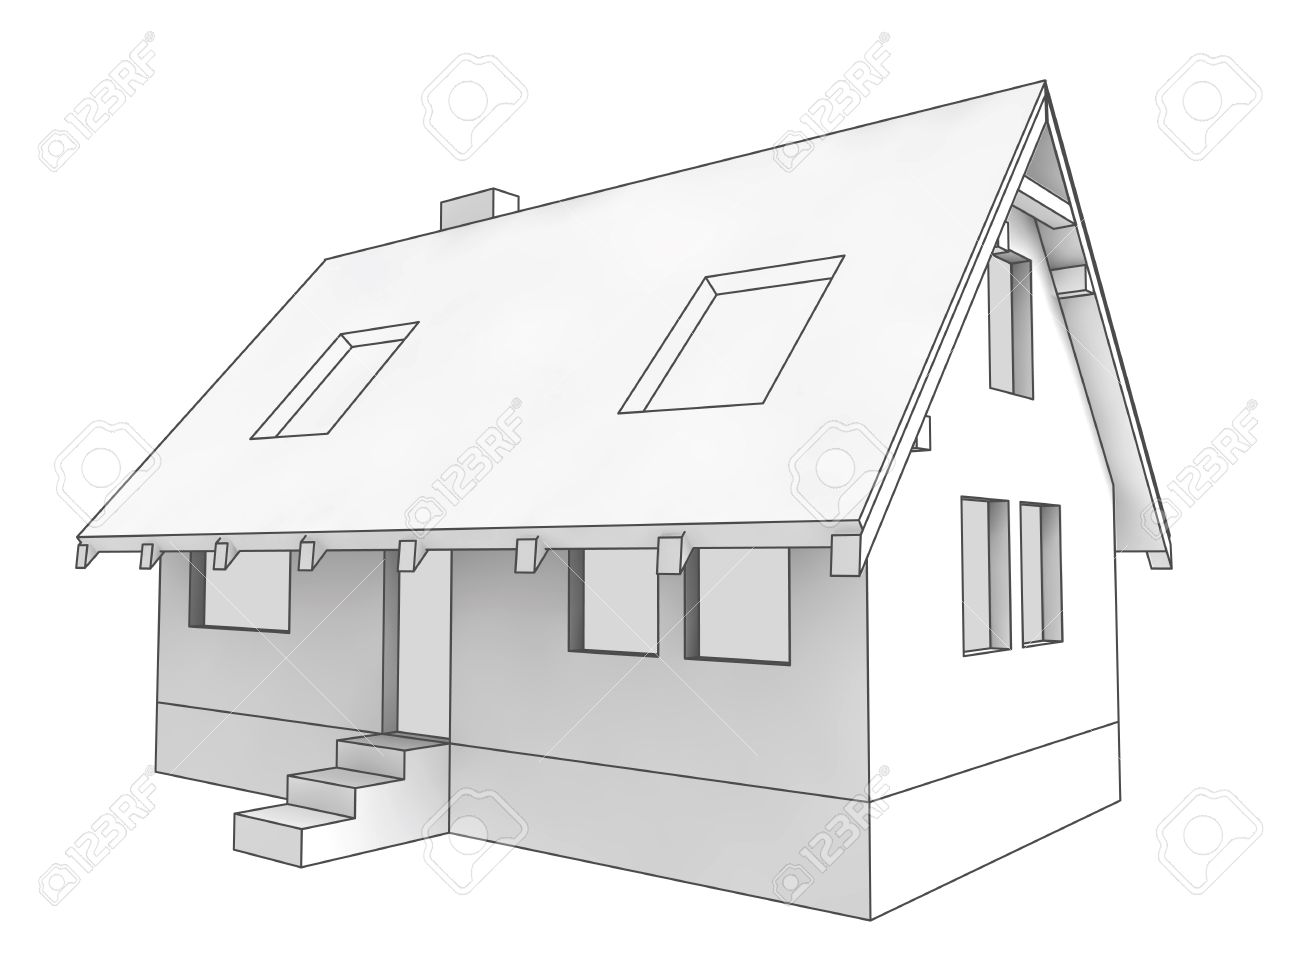 isolated diagram icon of new private house project illustration  : house diagram - findchart.co